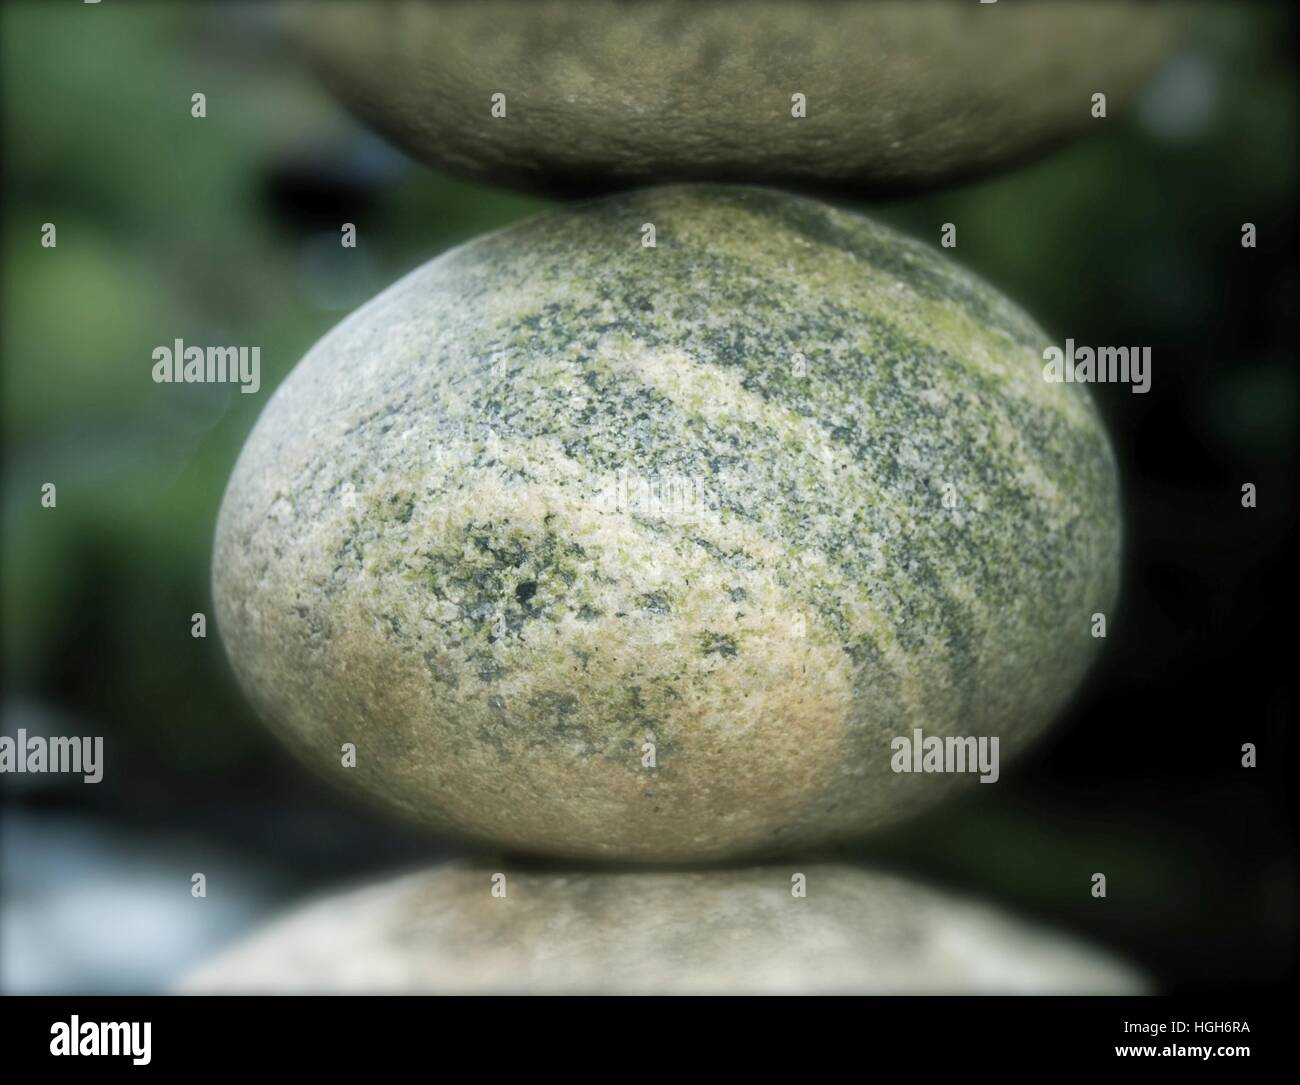 Stuck between a rock and a hard place. River stone suspended between two other stones. Stock Photo